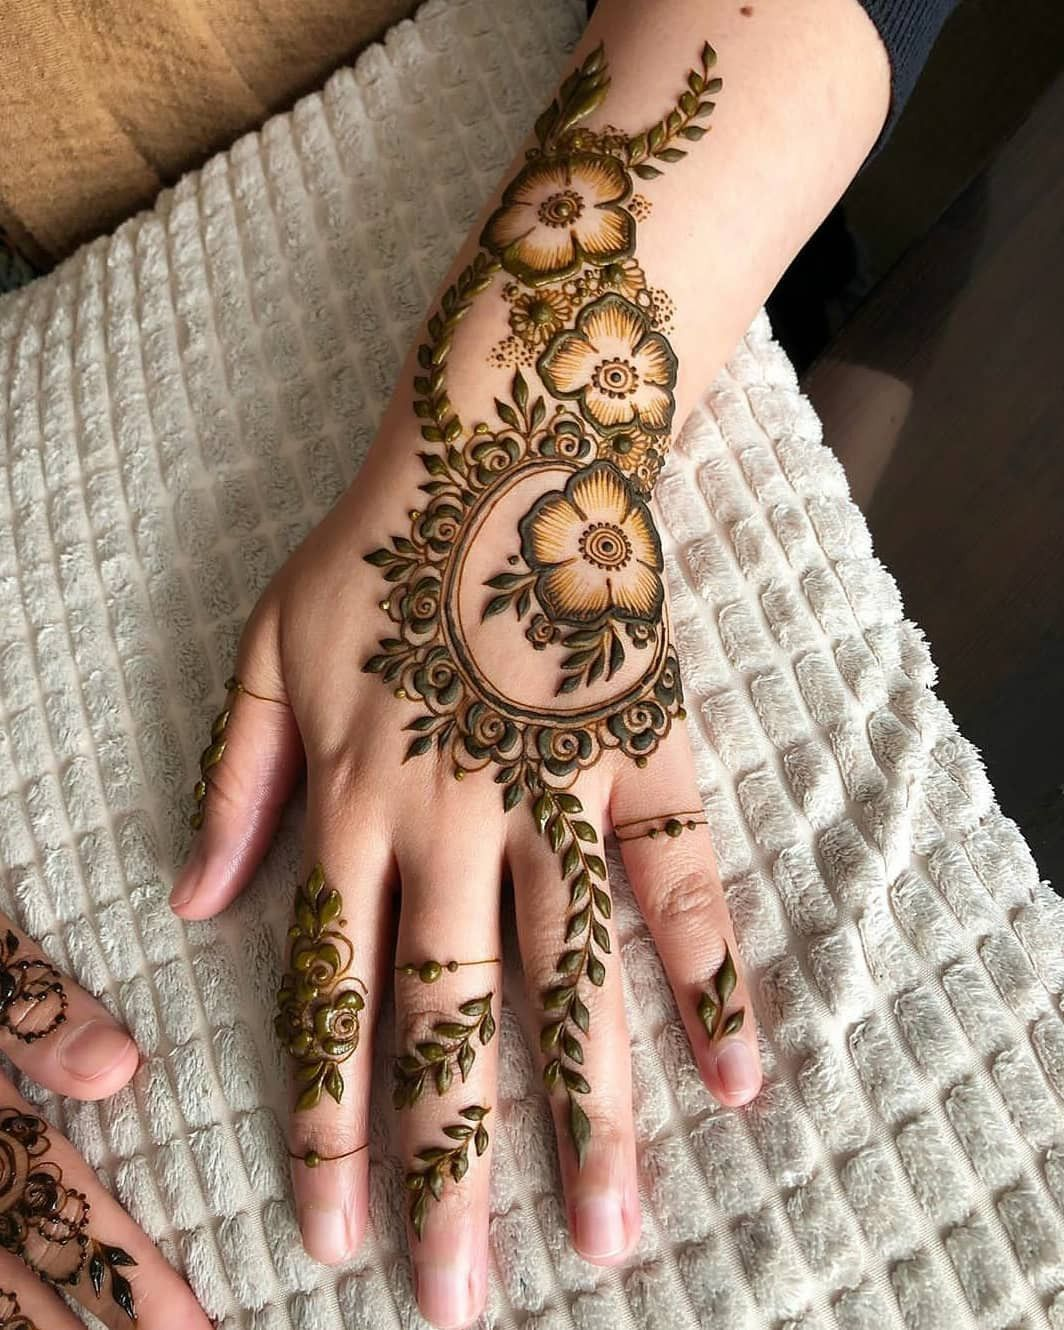 42 Trendy Henna Tattoo Design Ideas To Try In 2020 Mehndi Designs Henna Tattoo Designs Latest Mehndi Designs